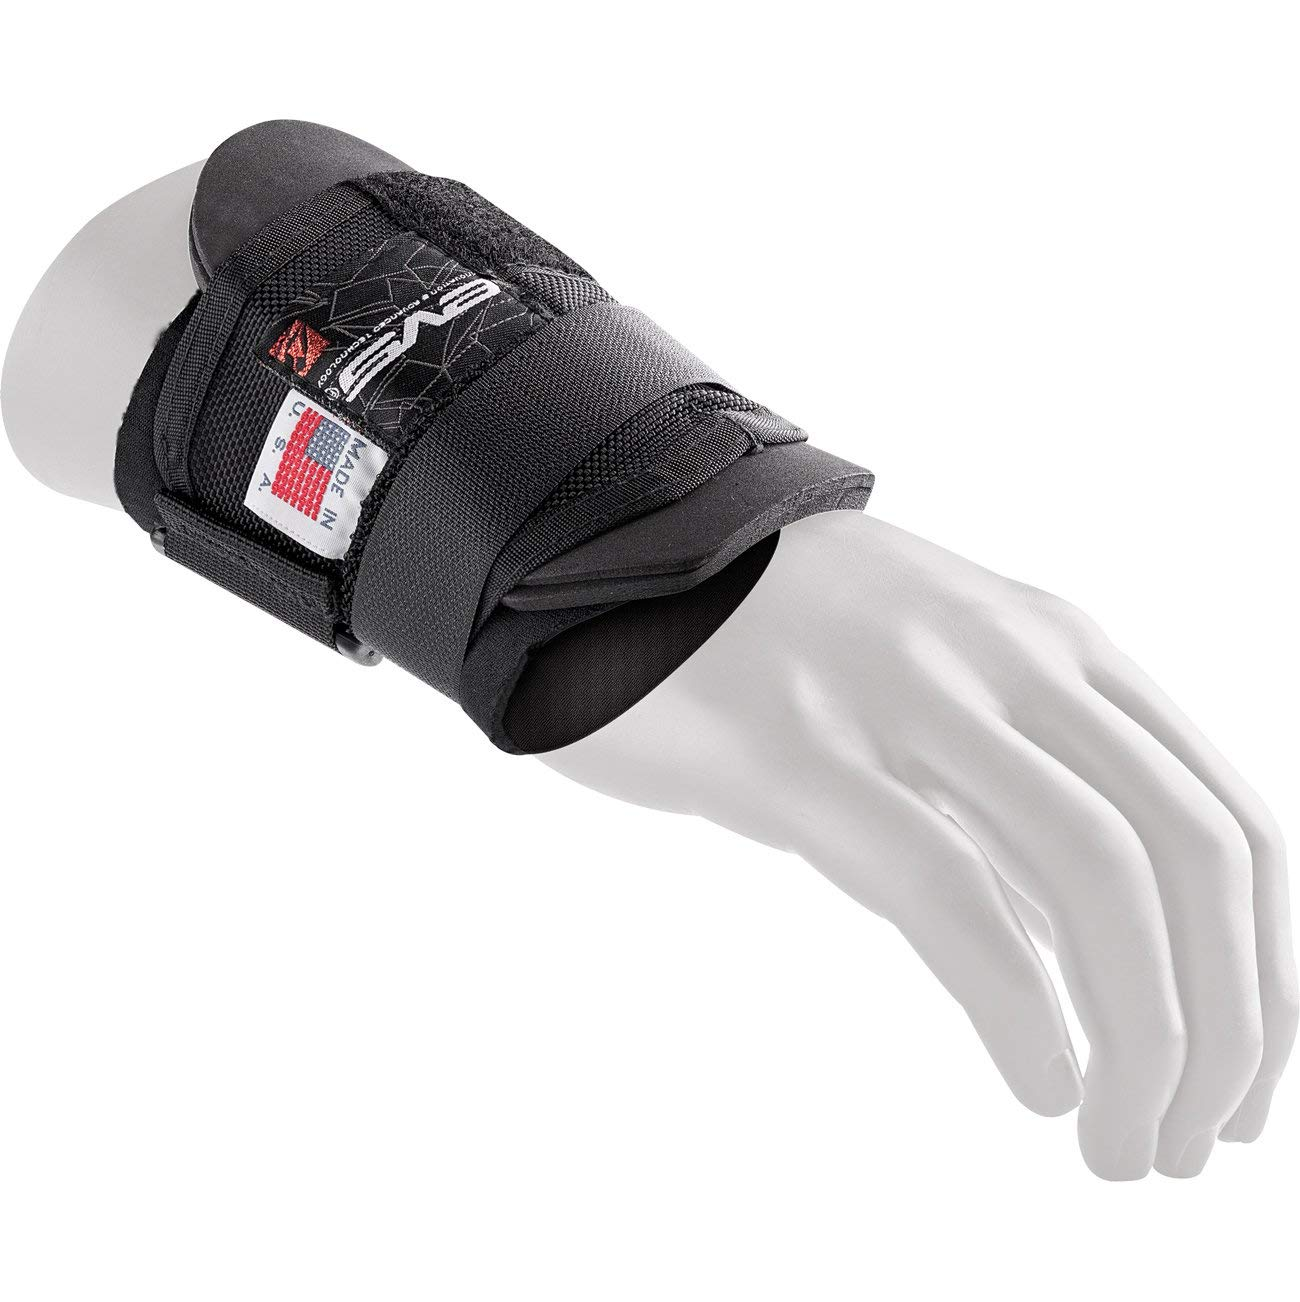 EVS WB01 Adult Wrist Guard MotoX Motorcycle Body Armor - One Size Fits Most